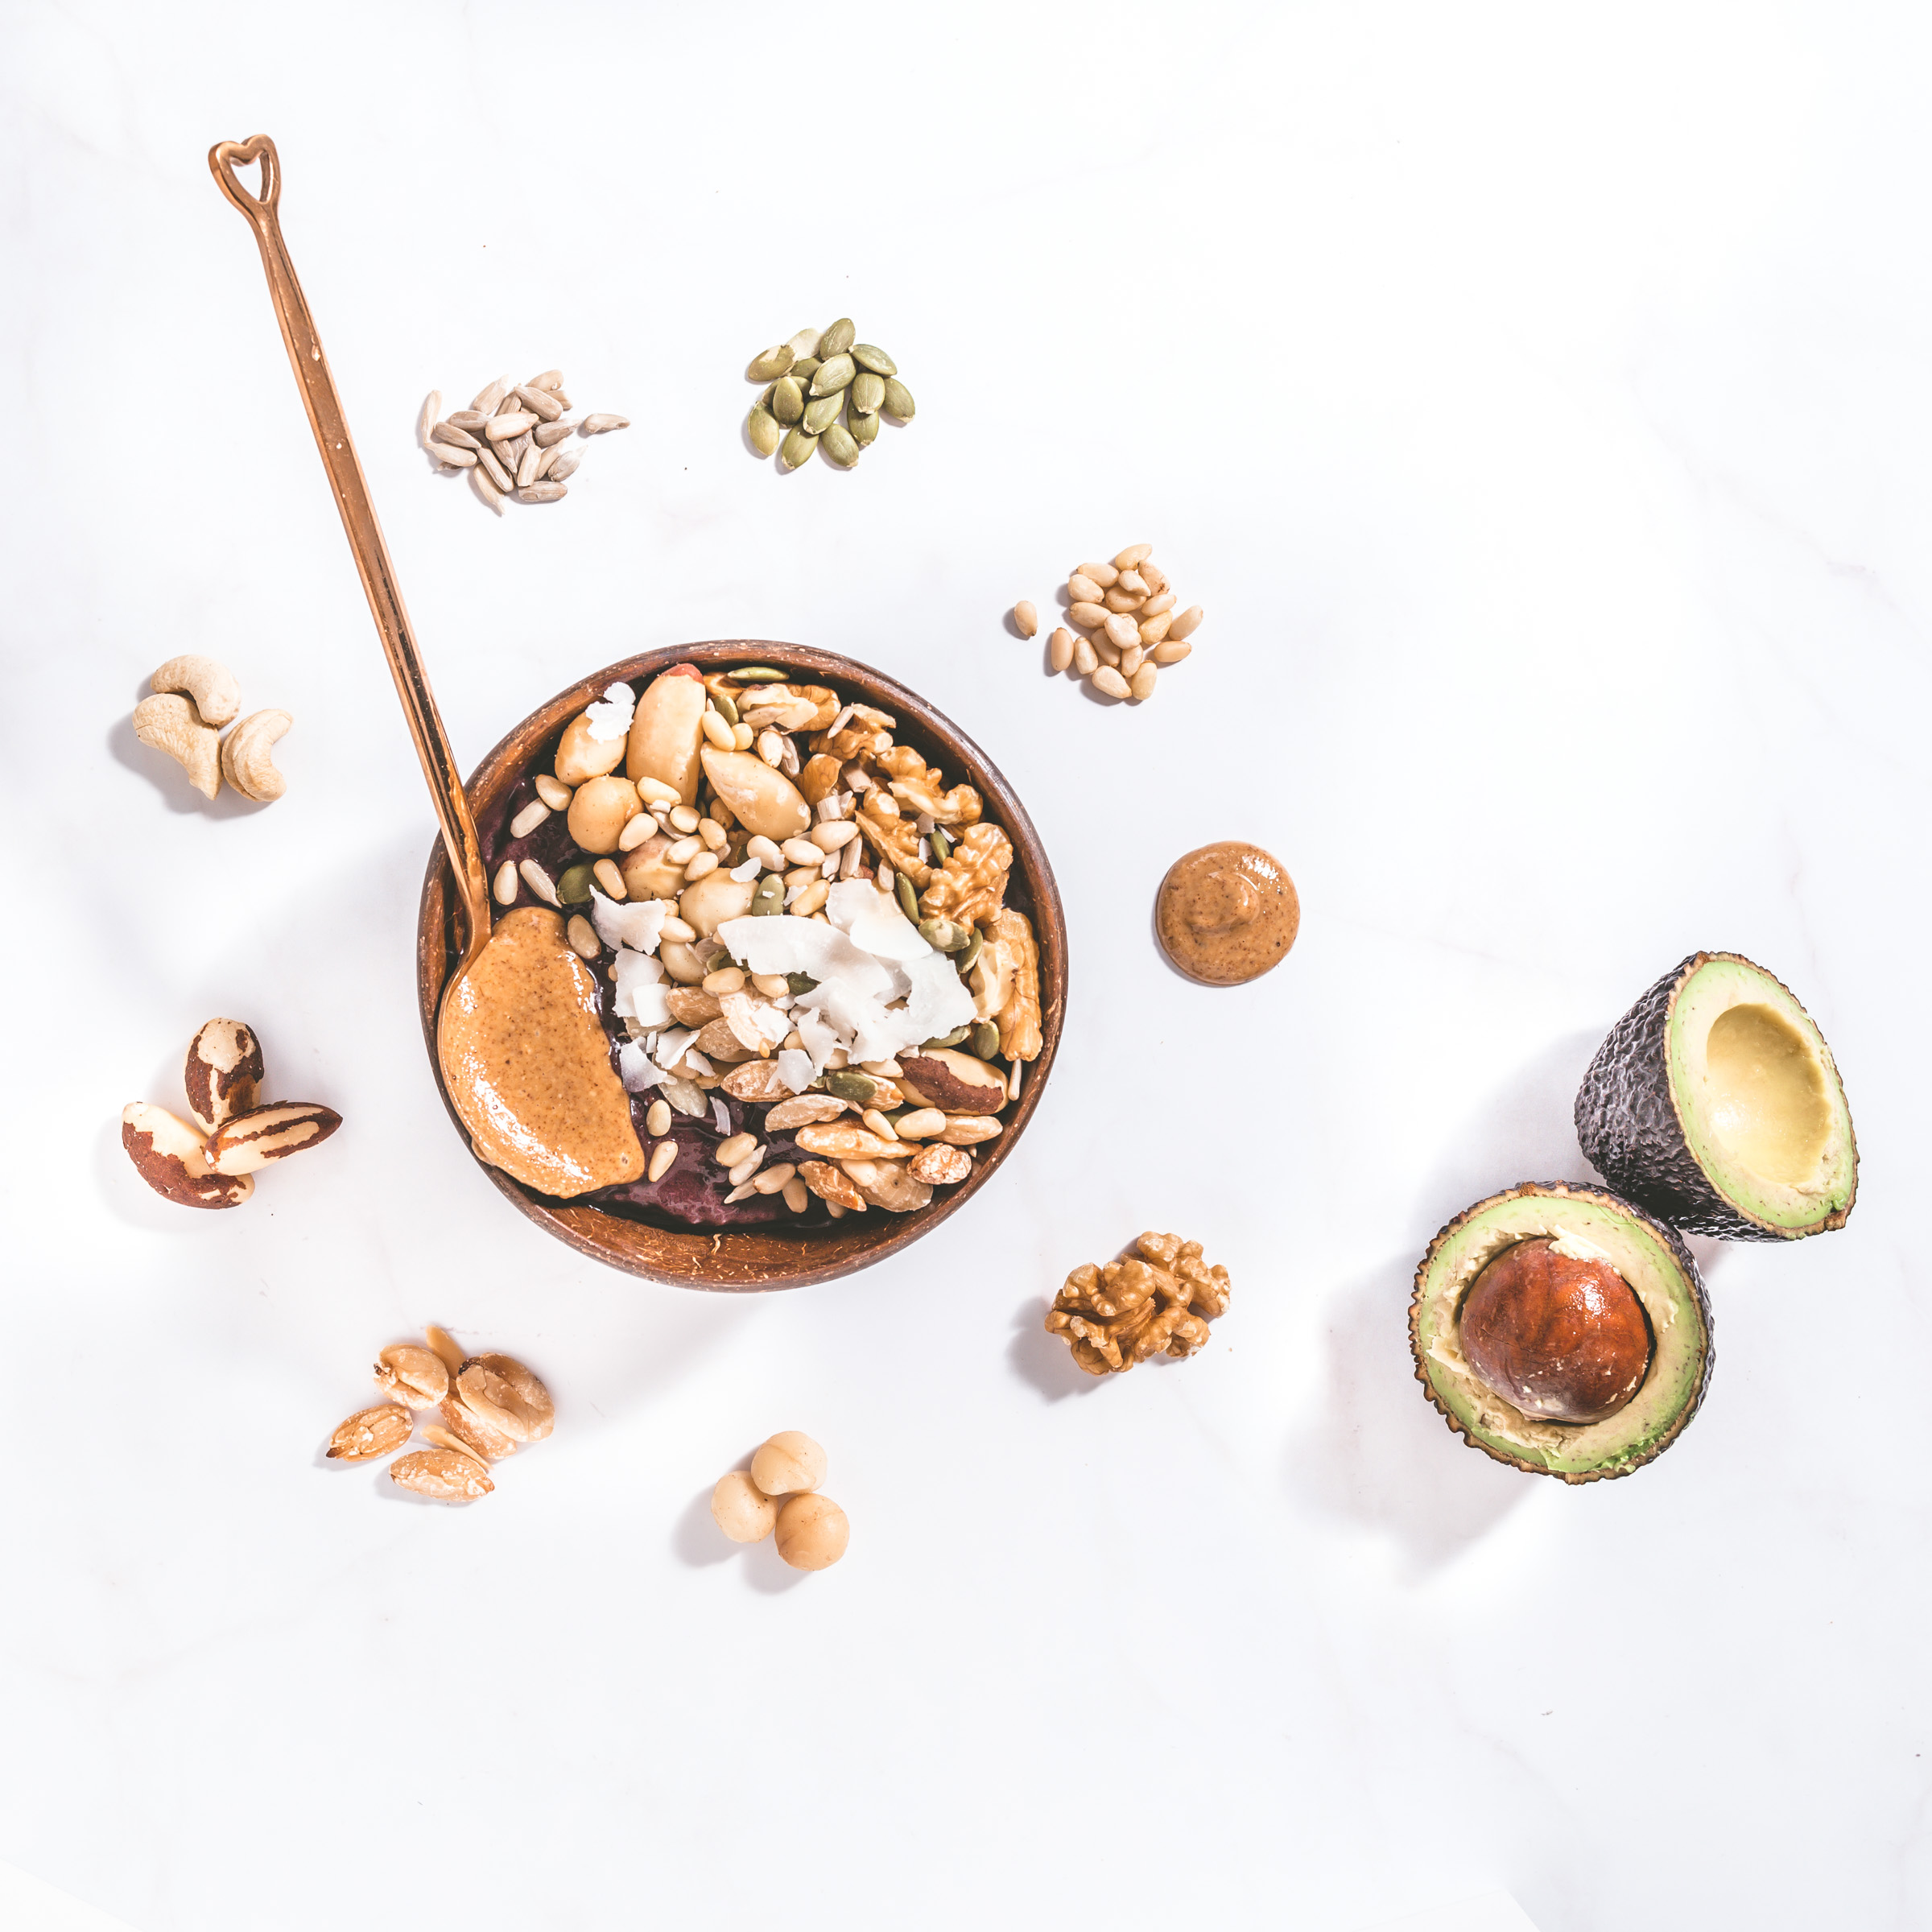 Keto Açaí Bowl blended with Poppy & Co. Organic Açaí Berry pulp and avocado, topped with a mixture of healthy nuts and seeds, finished with a spoonful of creamy almond butter